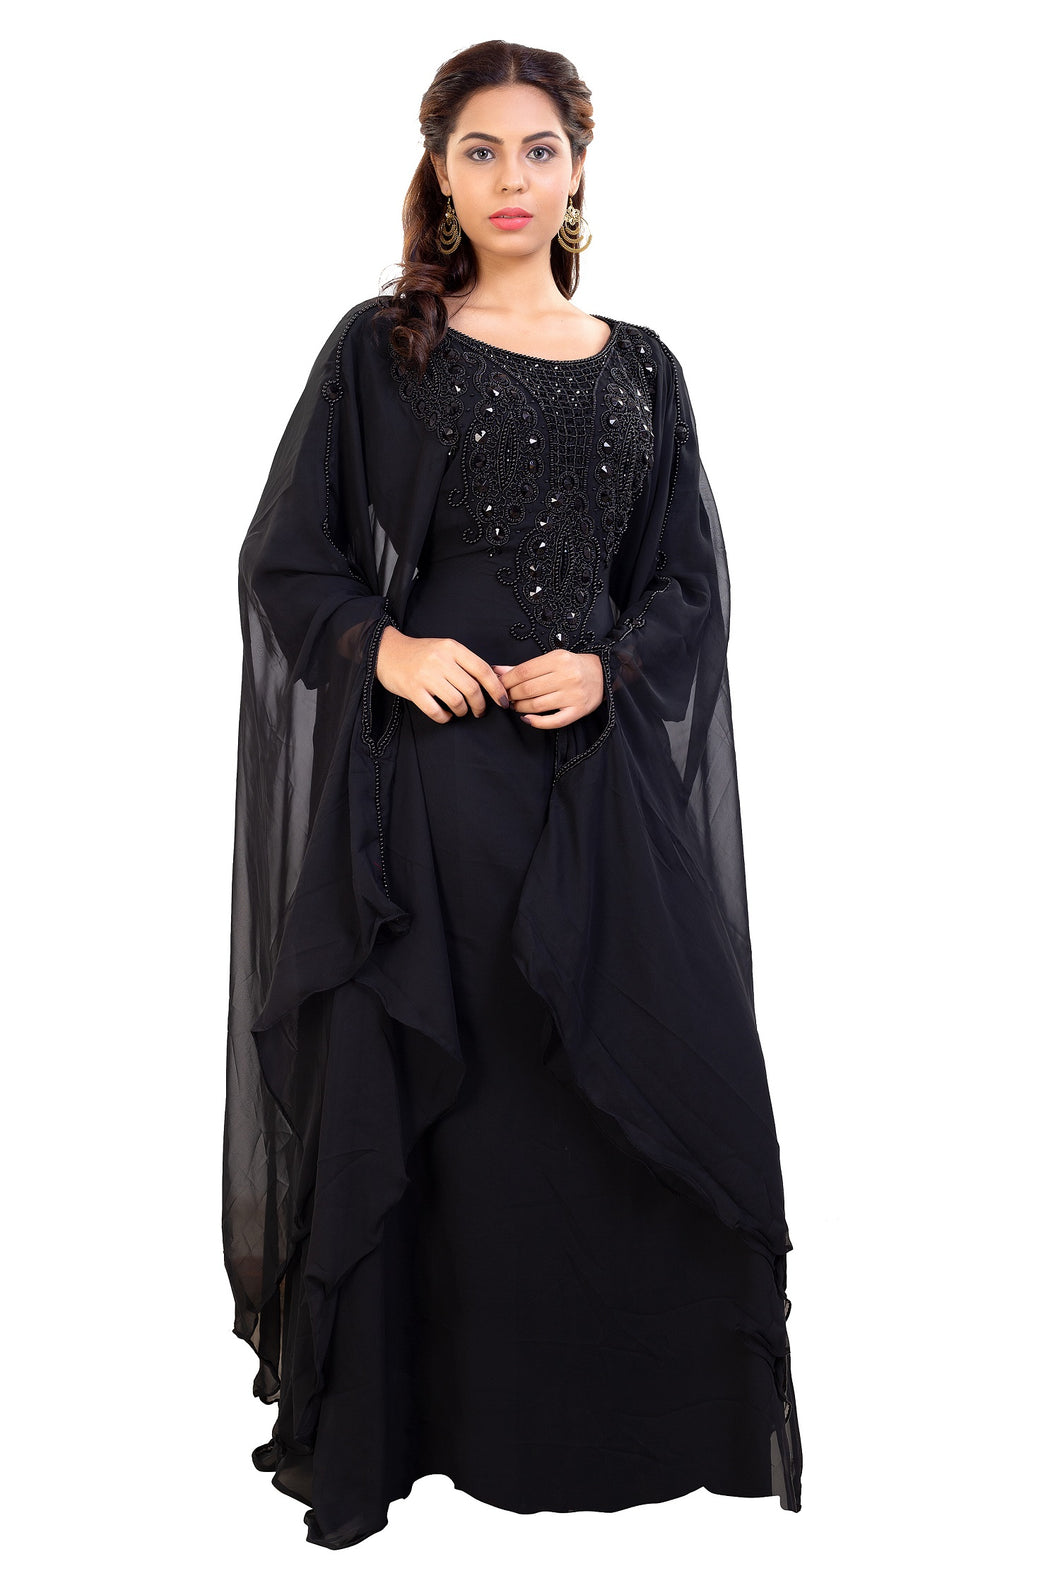 Jasmine Designer Maghribi Kaftan Ladies Farasha Maxi Dress